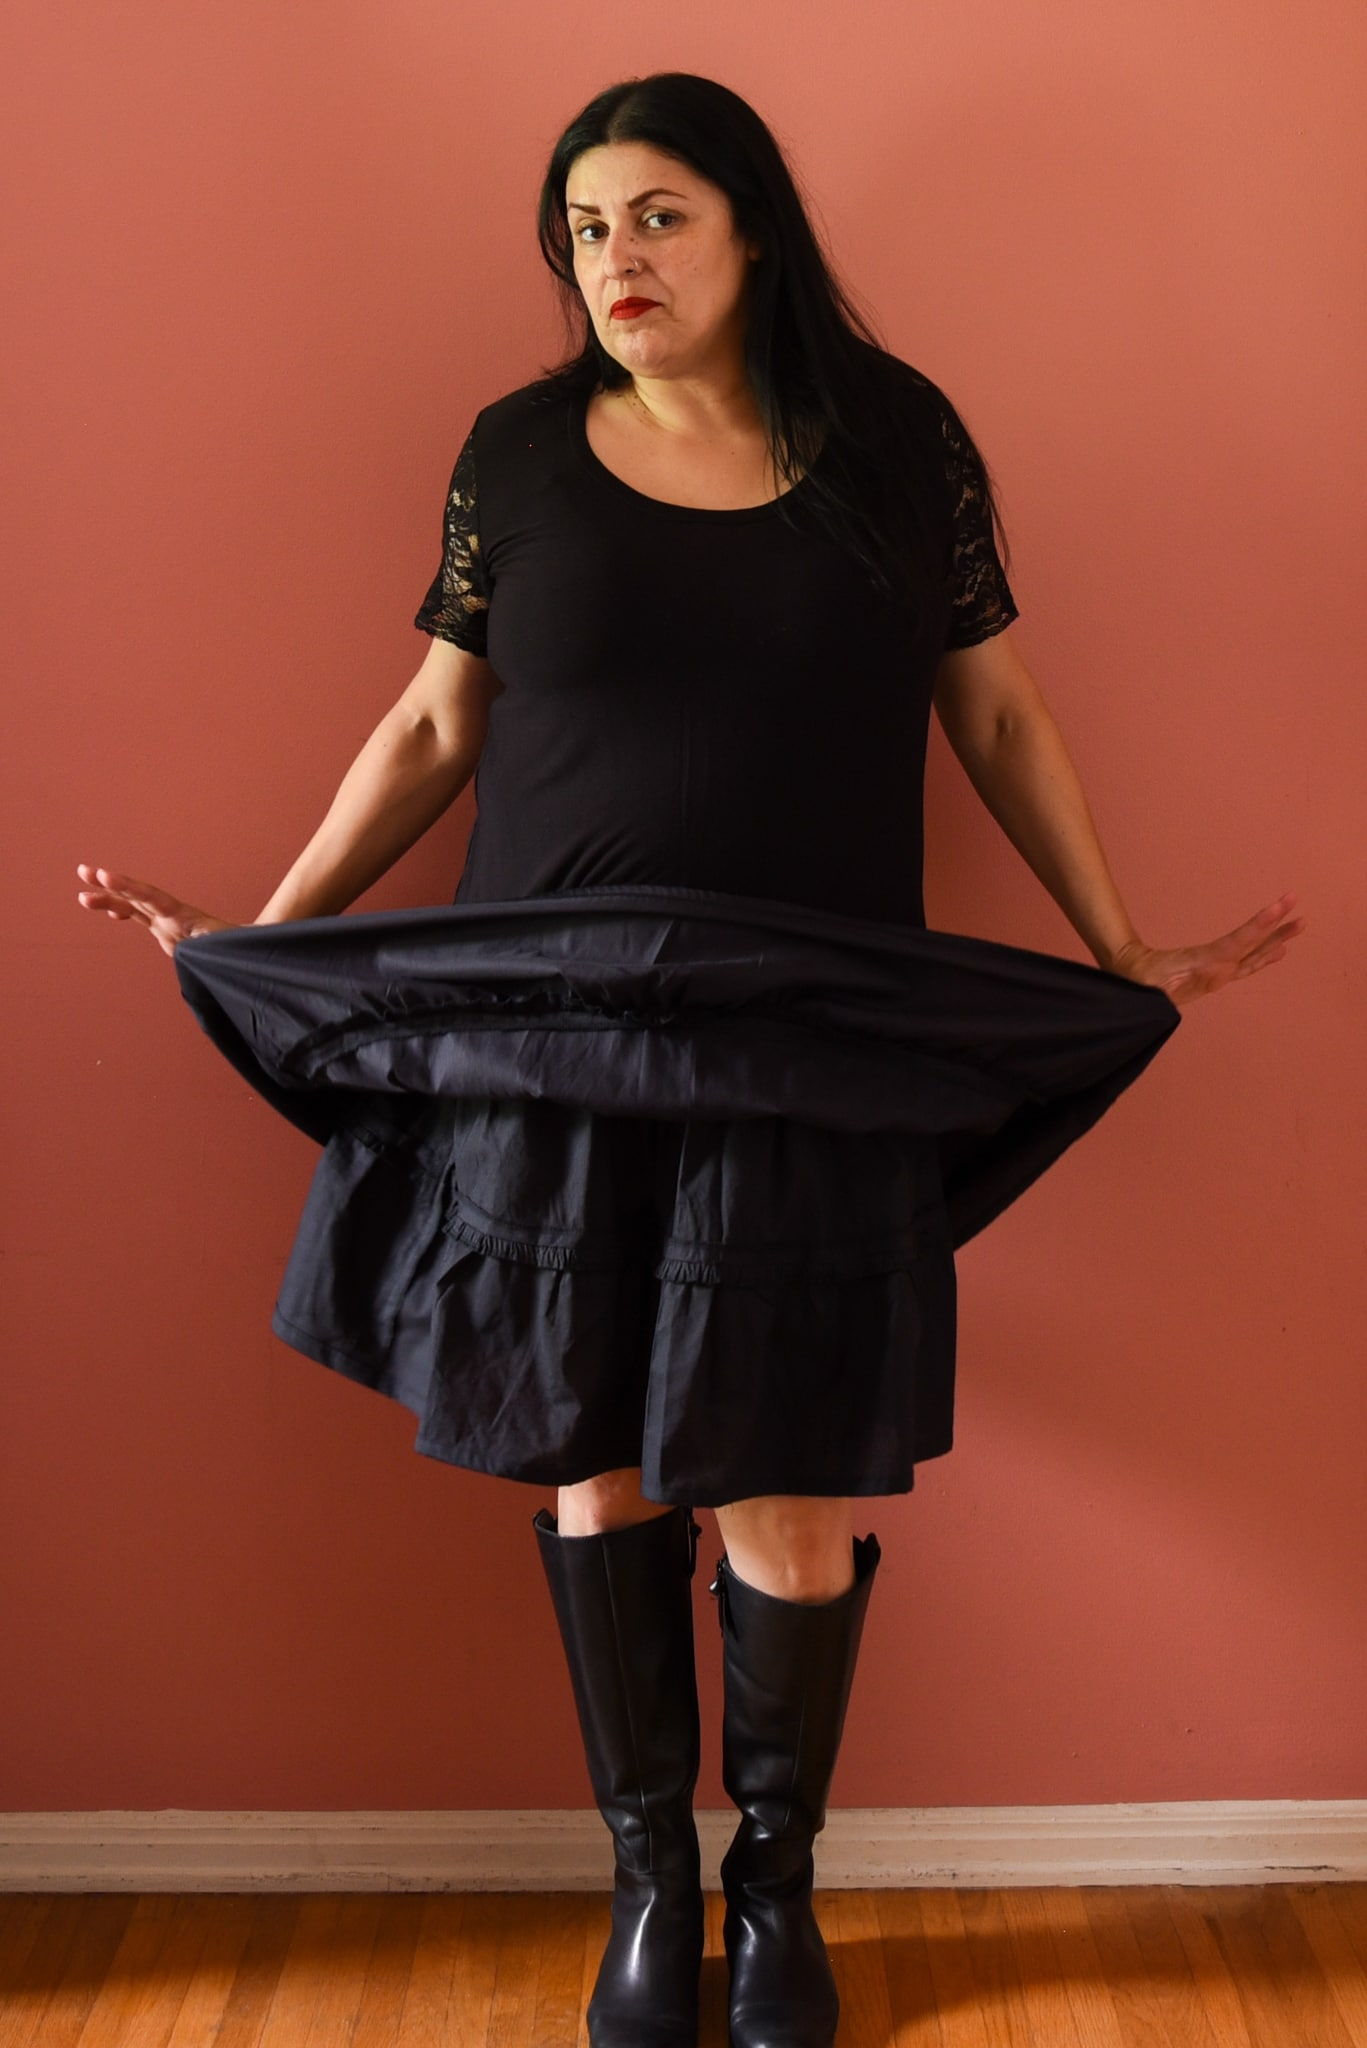 Image of a woman with long black hair wearing a black top with lace sleeves, a black skirt with gathered panels, knee-high black books standing in front of a pink wall holding the skirt up to expose the lining of the skirt.